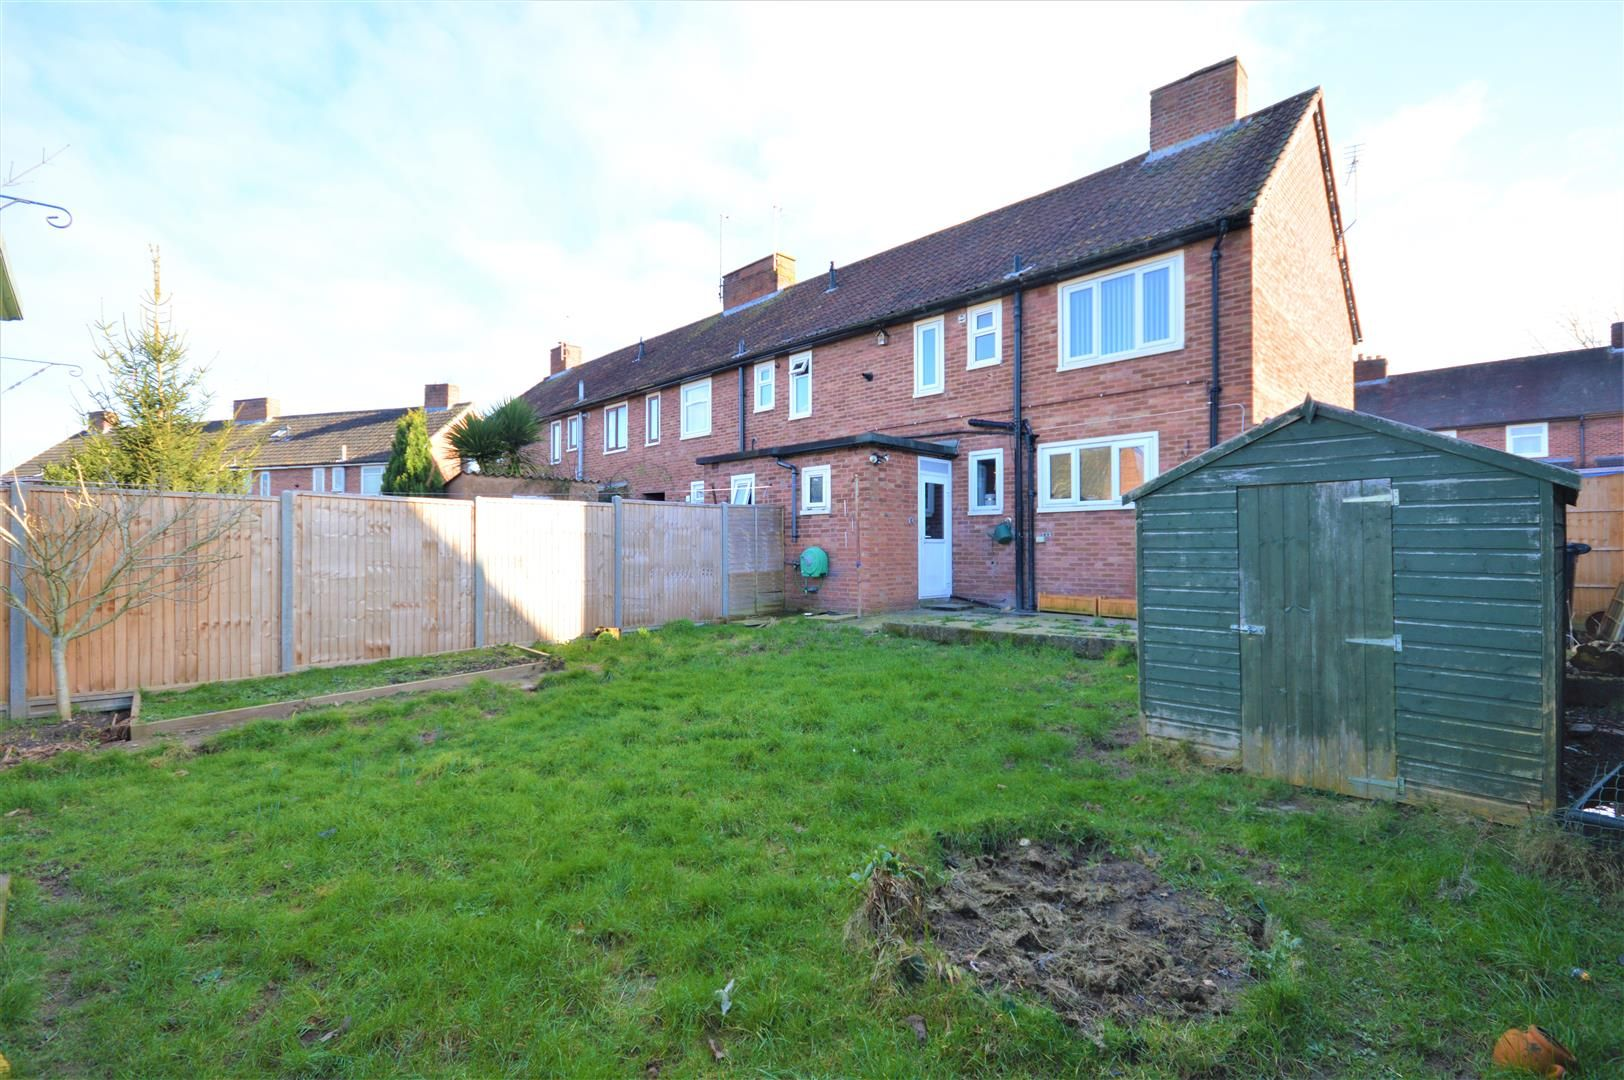 3 bed end-of-terrace for sale in Hereford 13